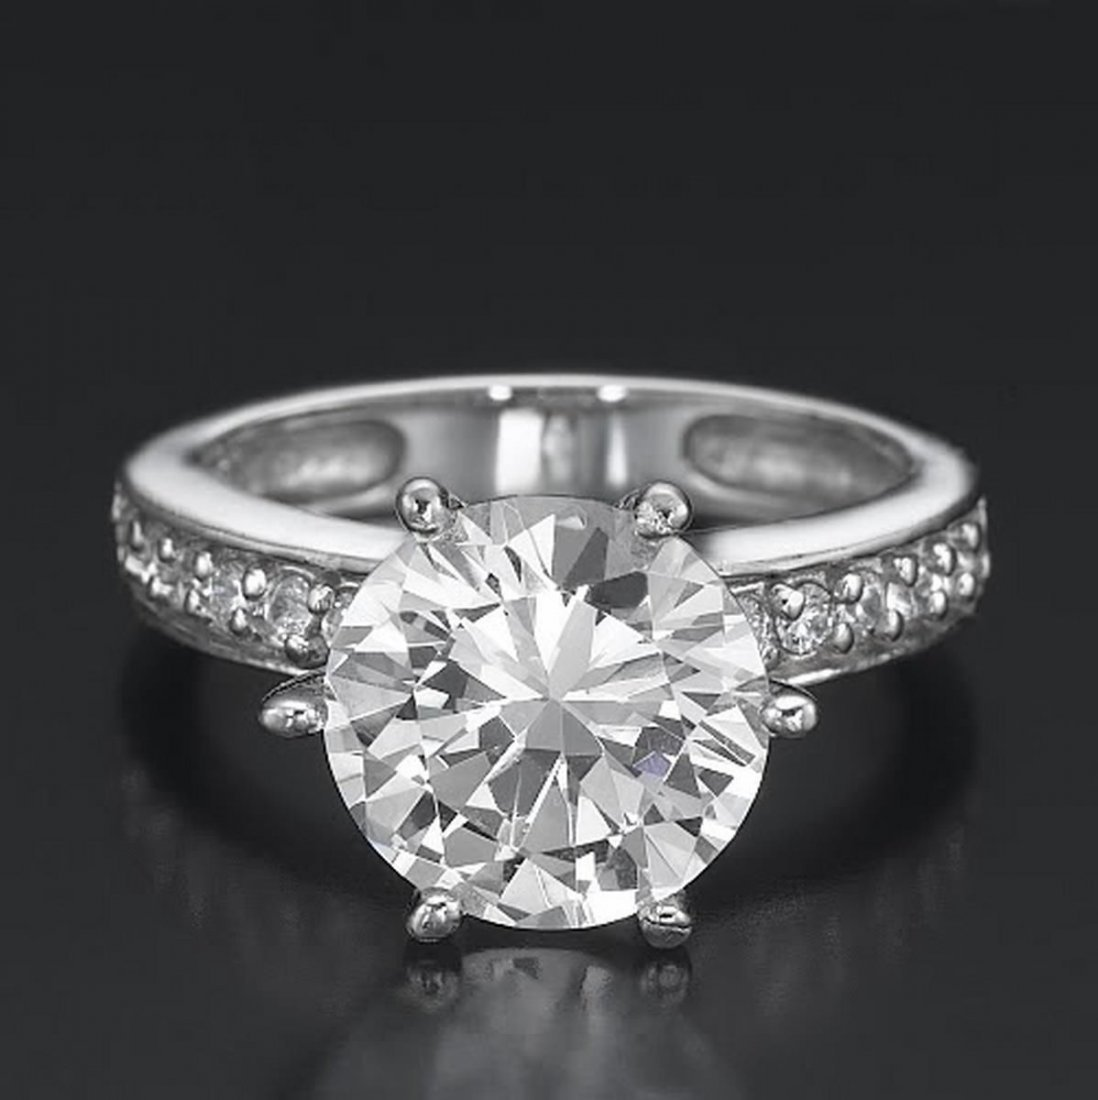 2 CT Round Cut Diamond Engagement Ring